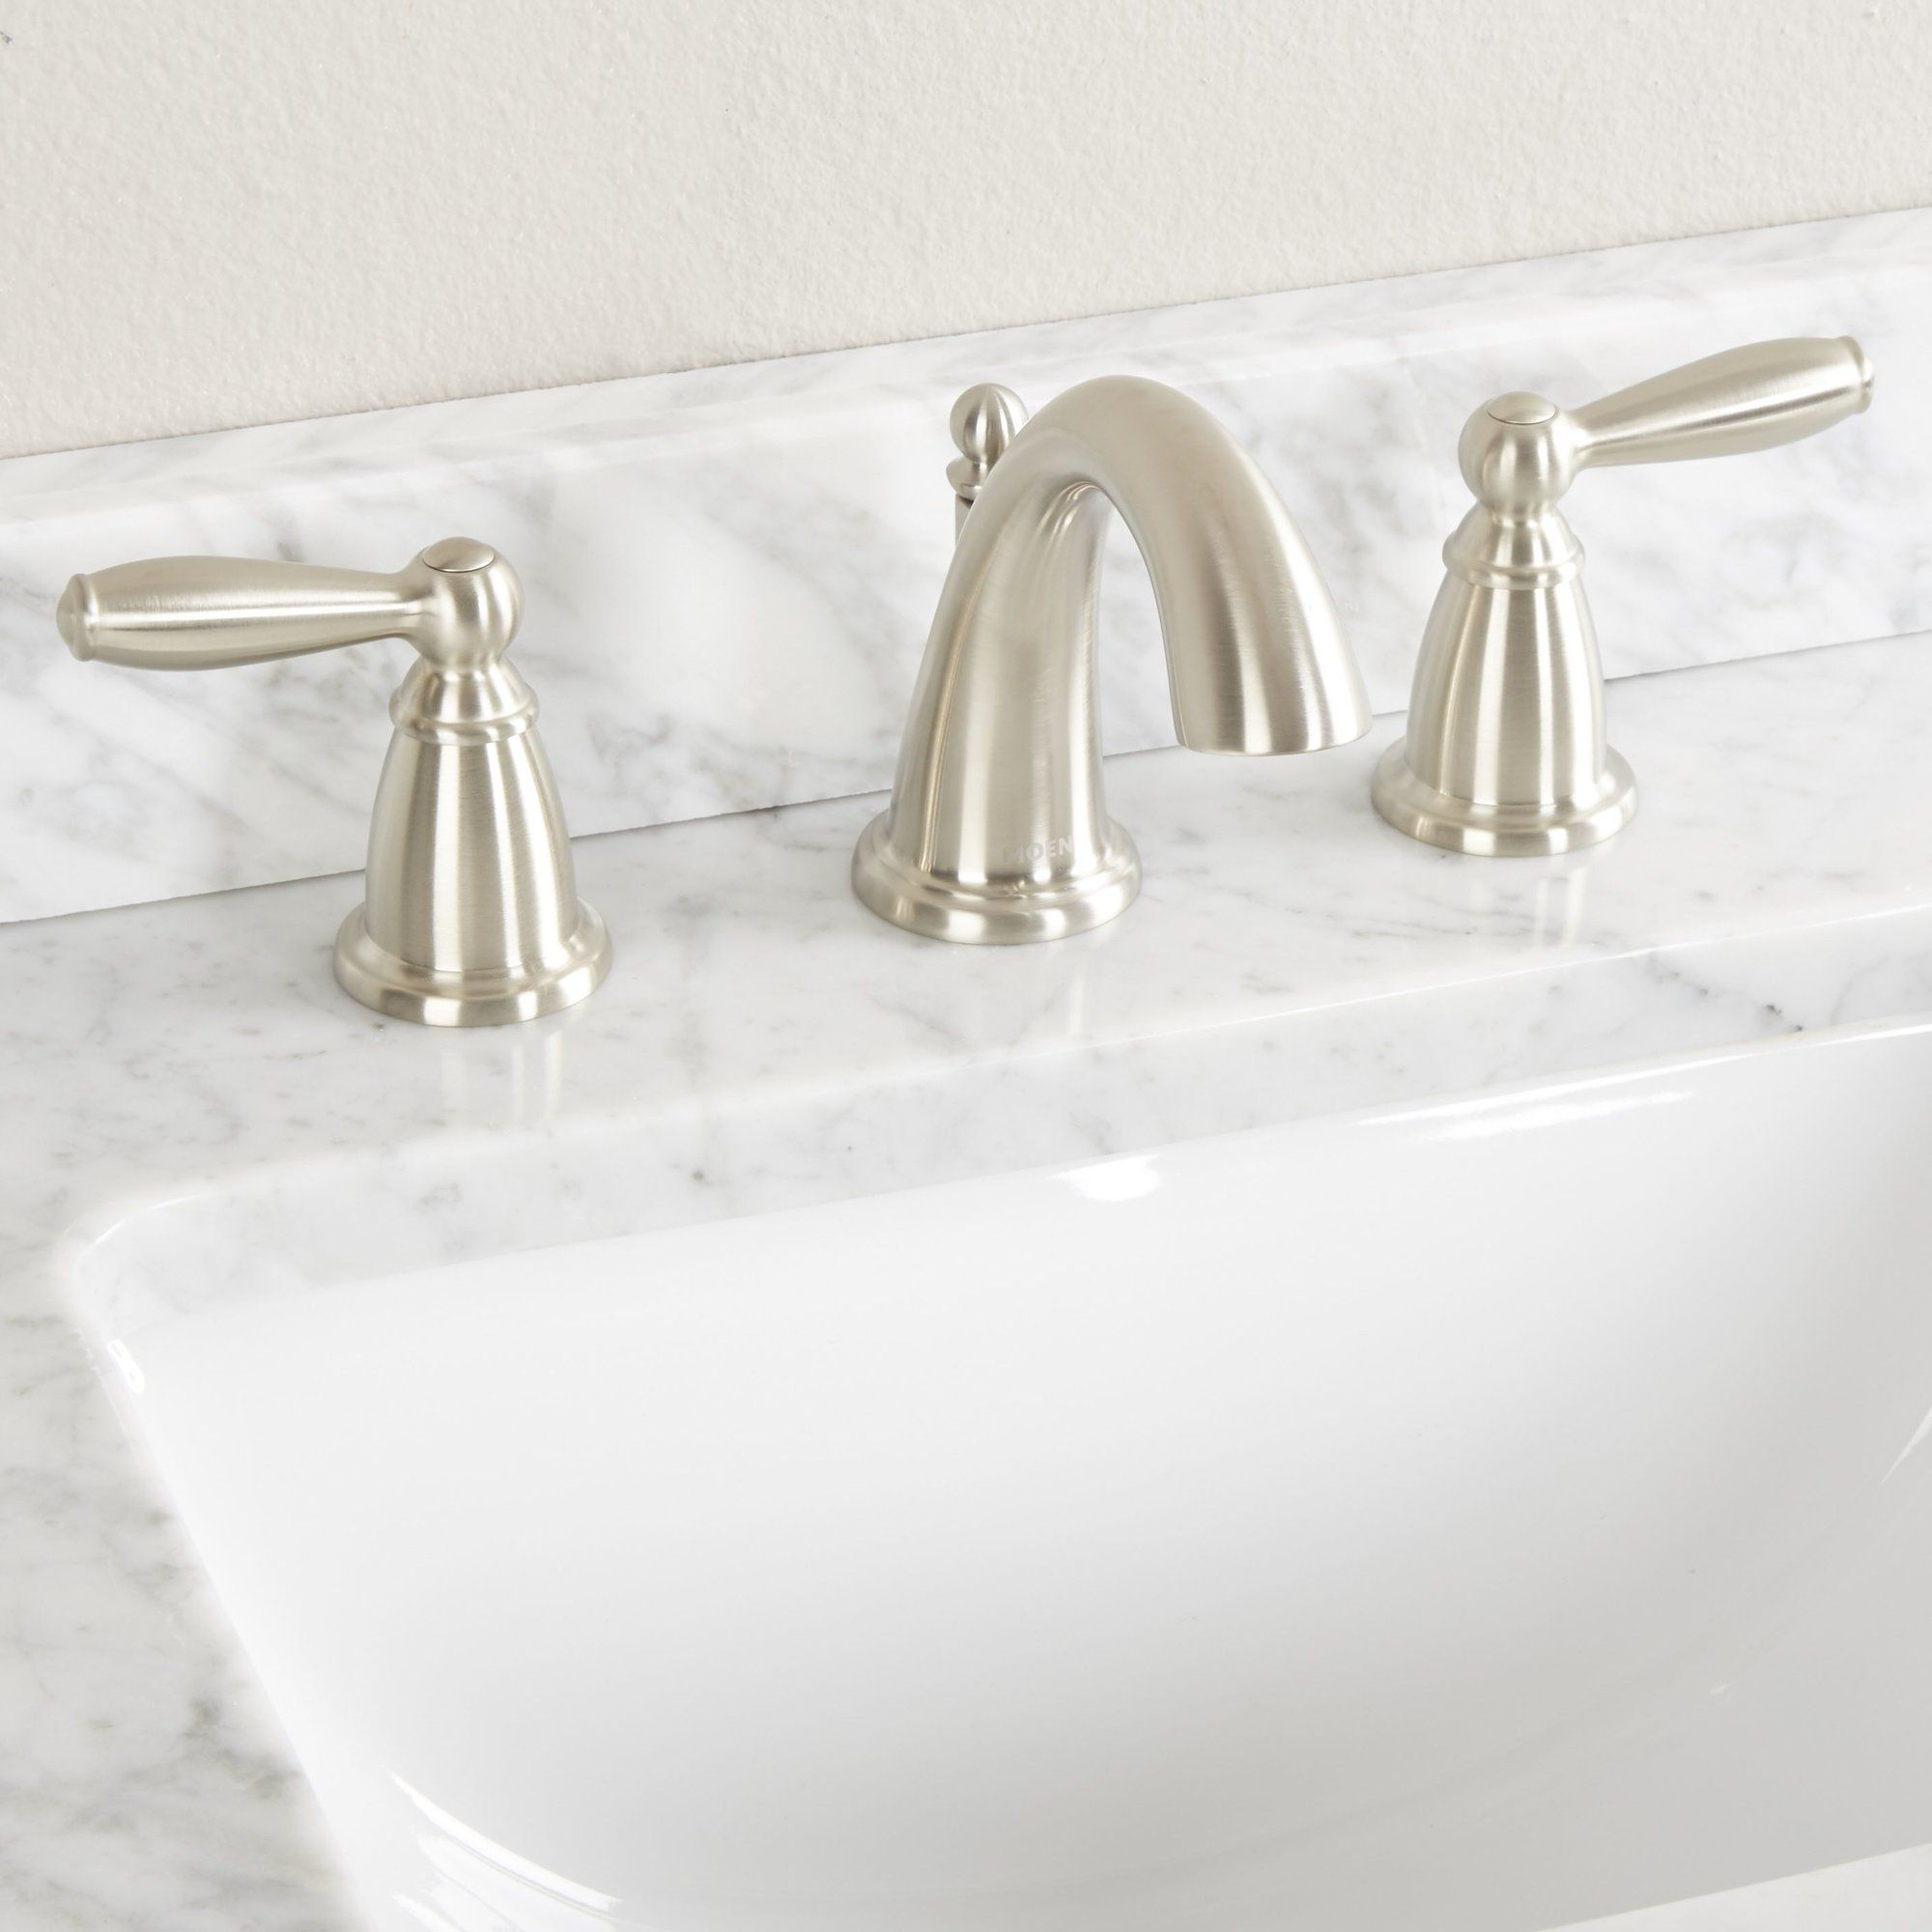 Photo of Brantford Widespread Bathroom Faucet with Drain Assembly